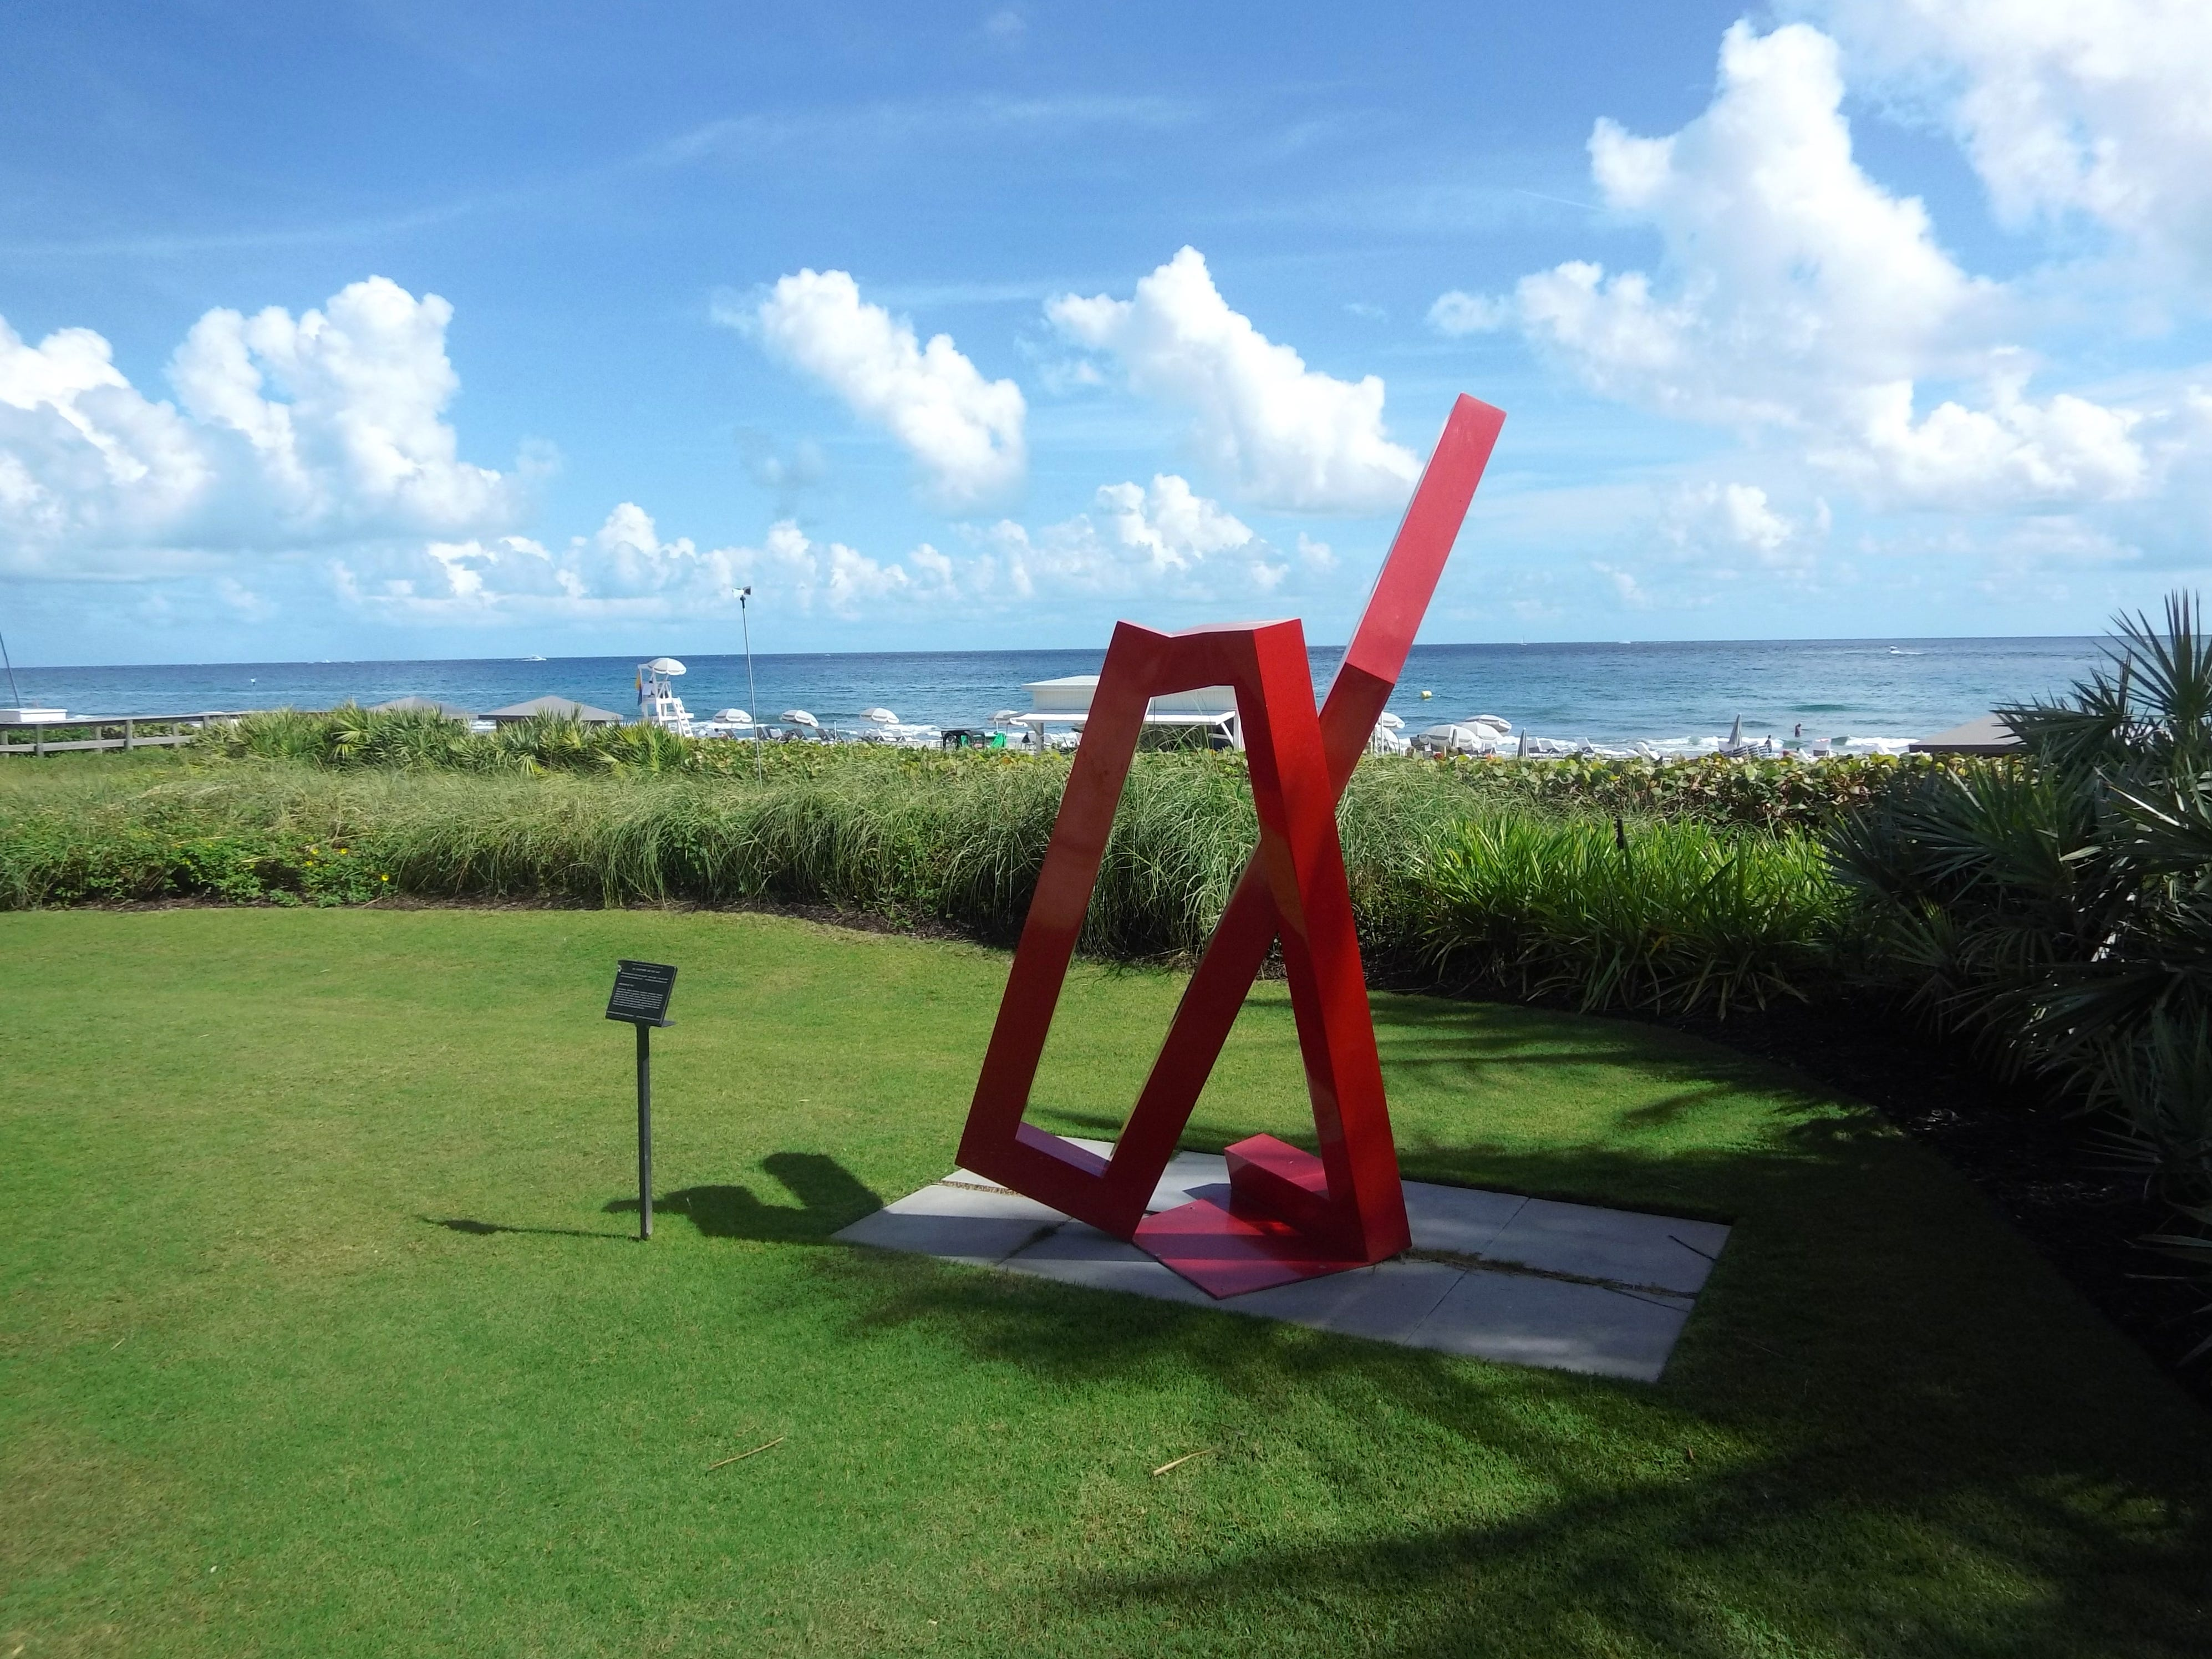 Another sculpture, curated by Sponder Gallery, with the backdrop of the Atlantic Ocean at Boca Beach Club.